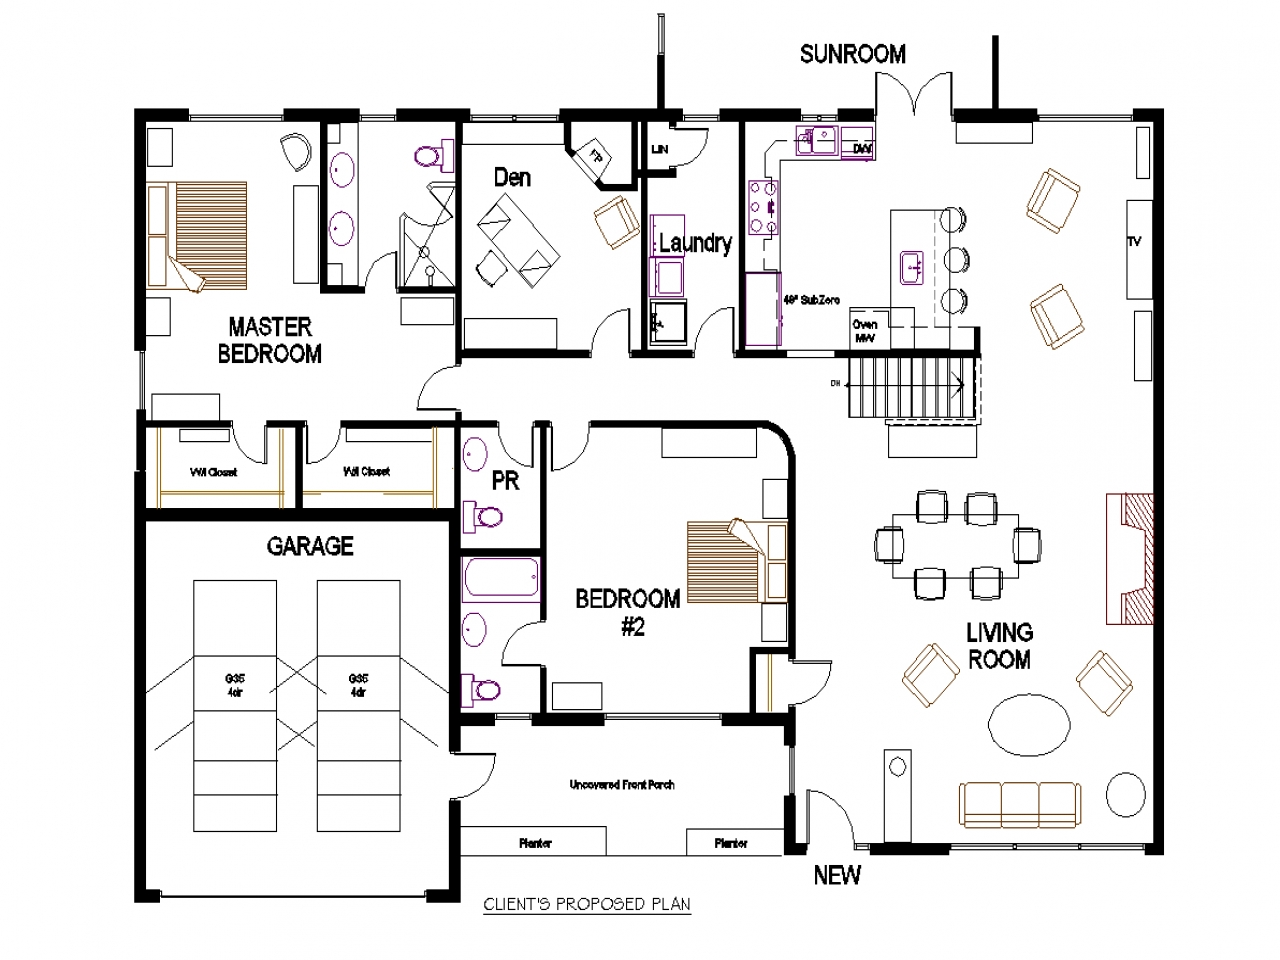 2 Bedroom Bungalow Floor Plans: Bungalow Open Concept Floor Plans Two Bedroom Bungalow